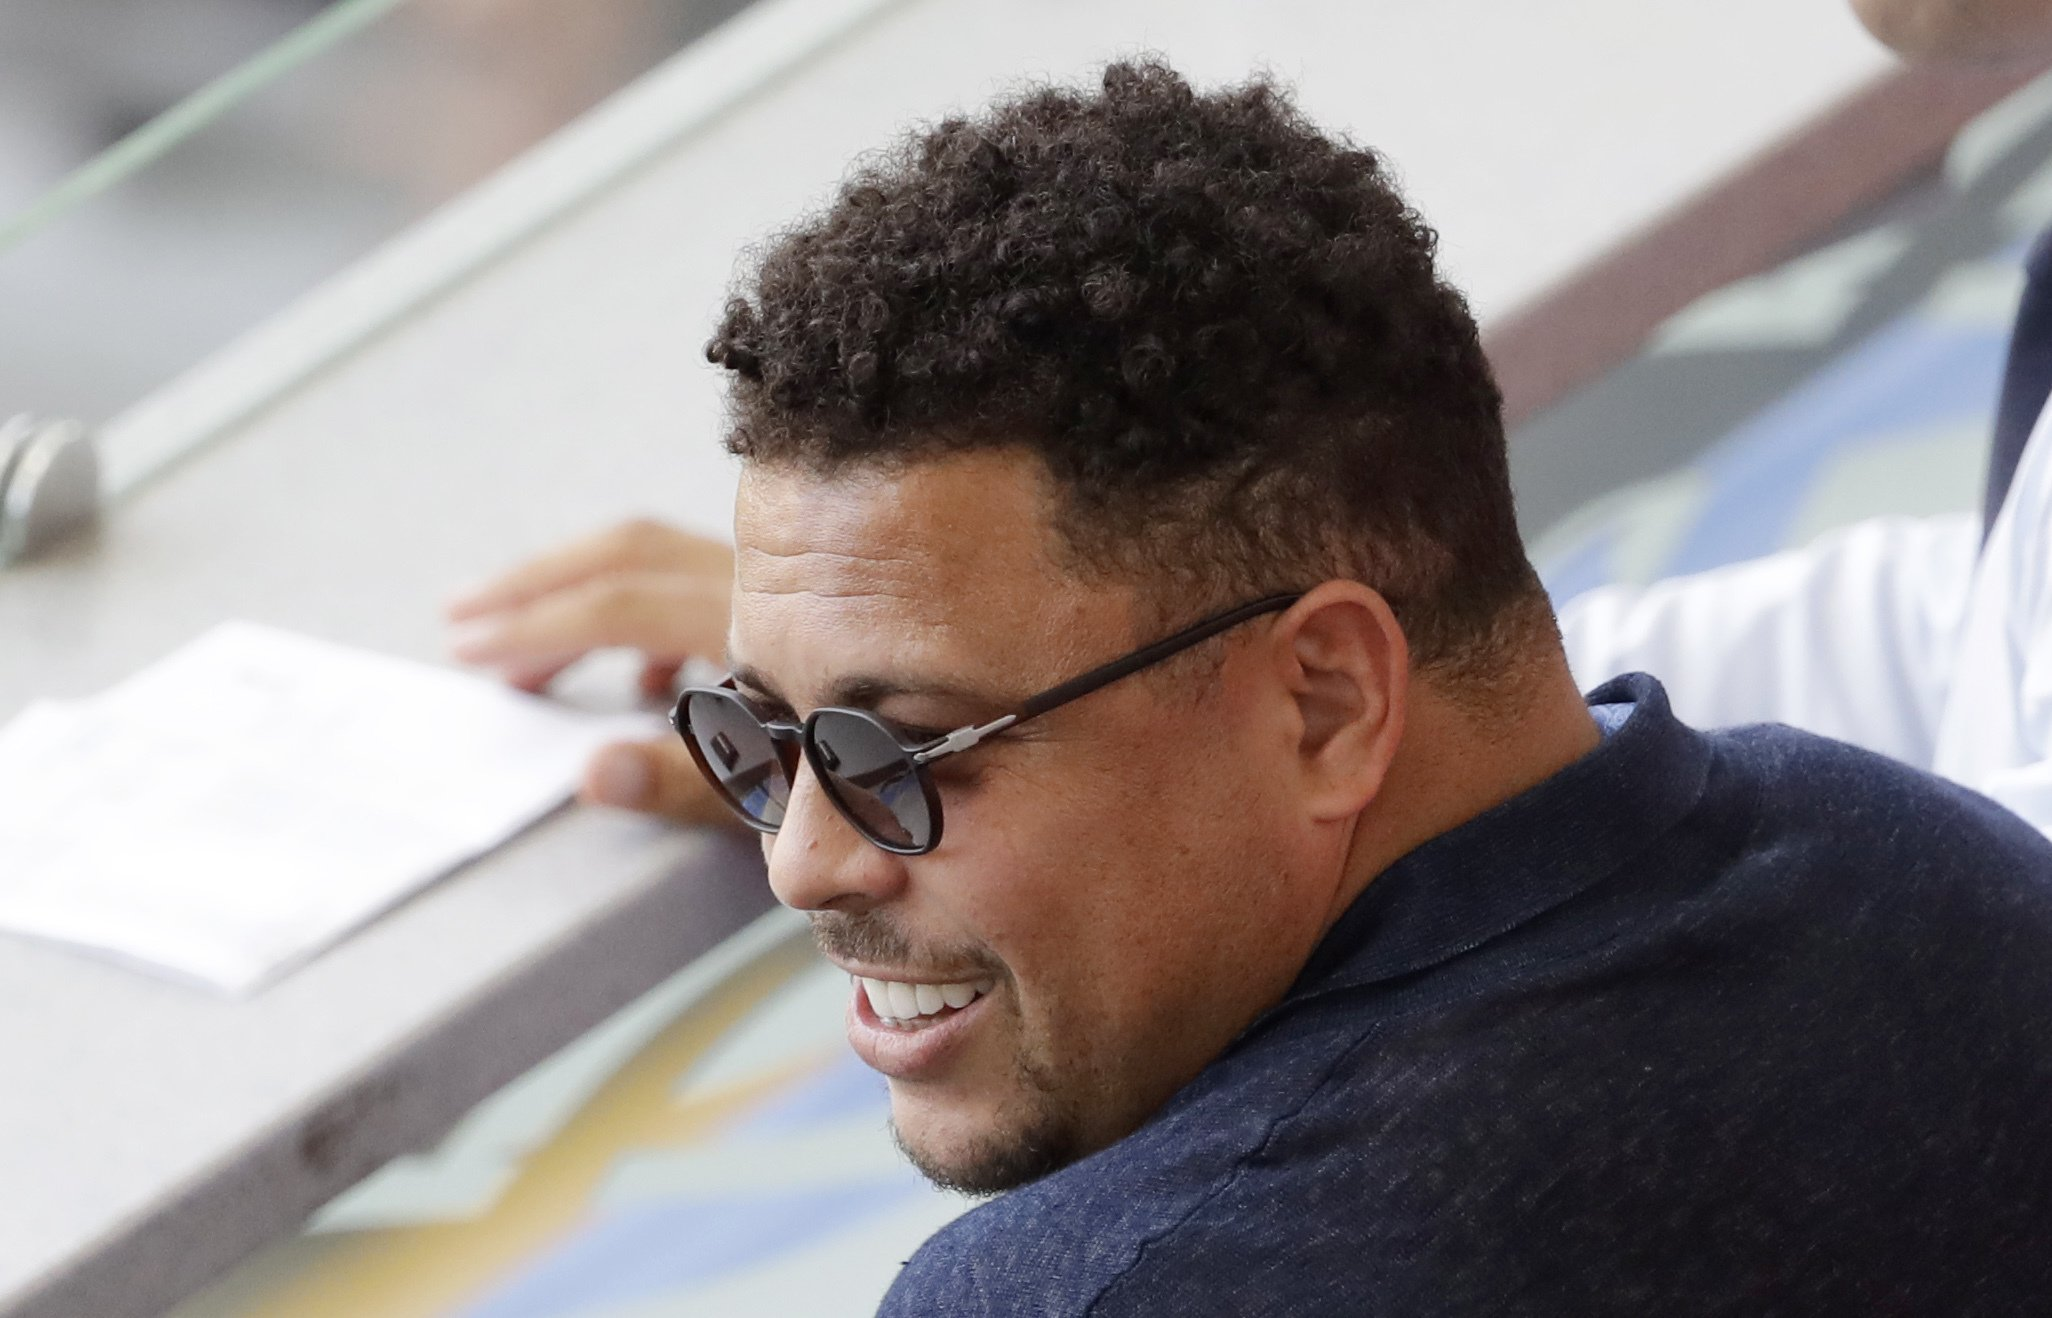 Brazil great Ronaldo watches his Valladolid team lose again